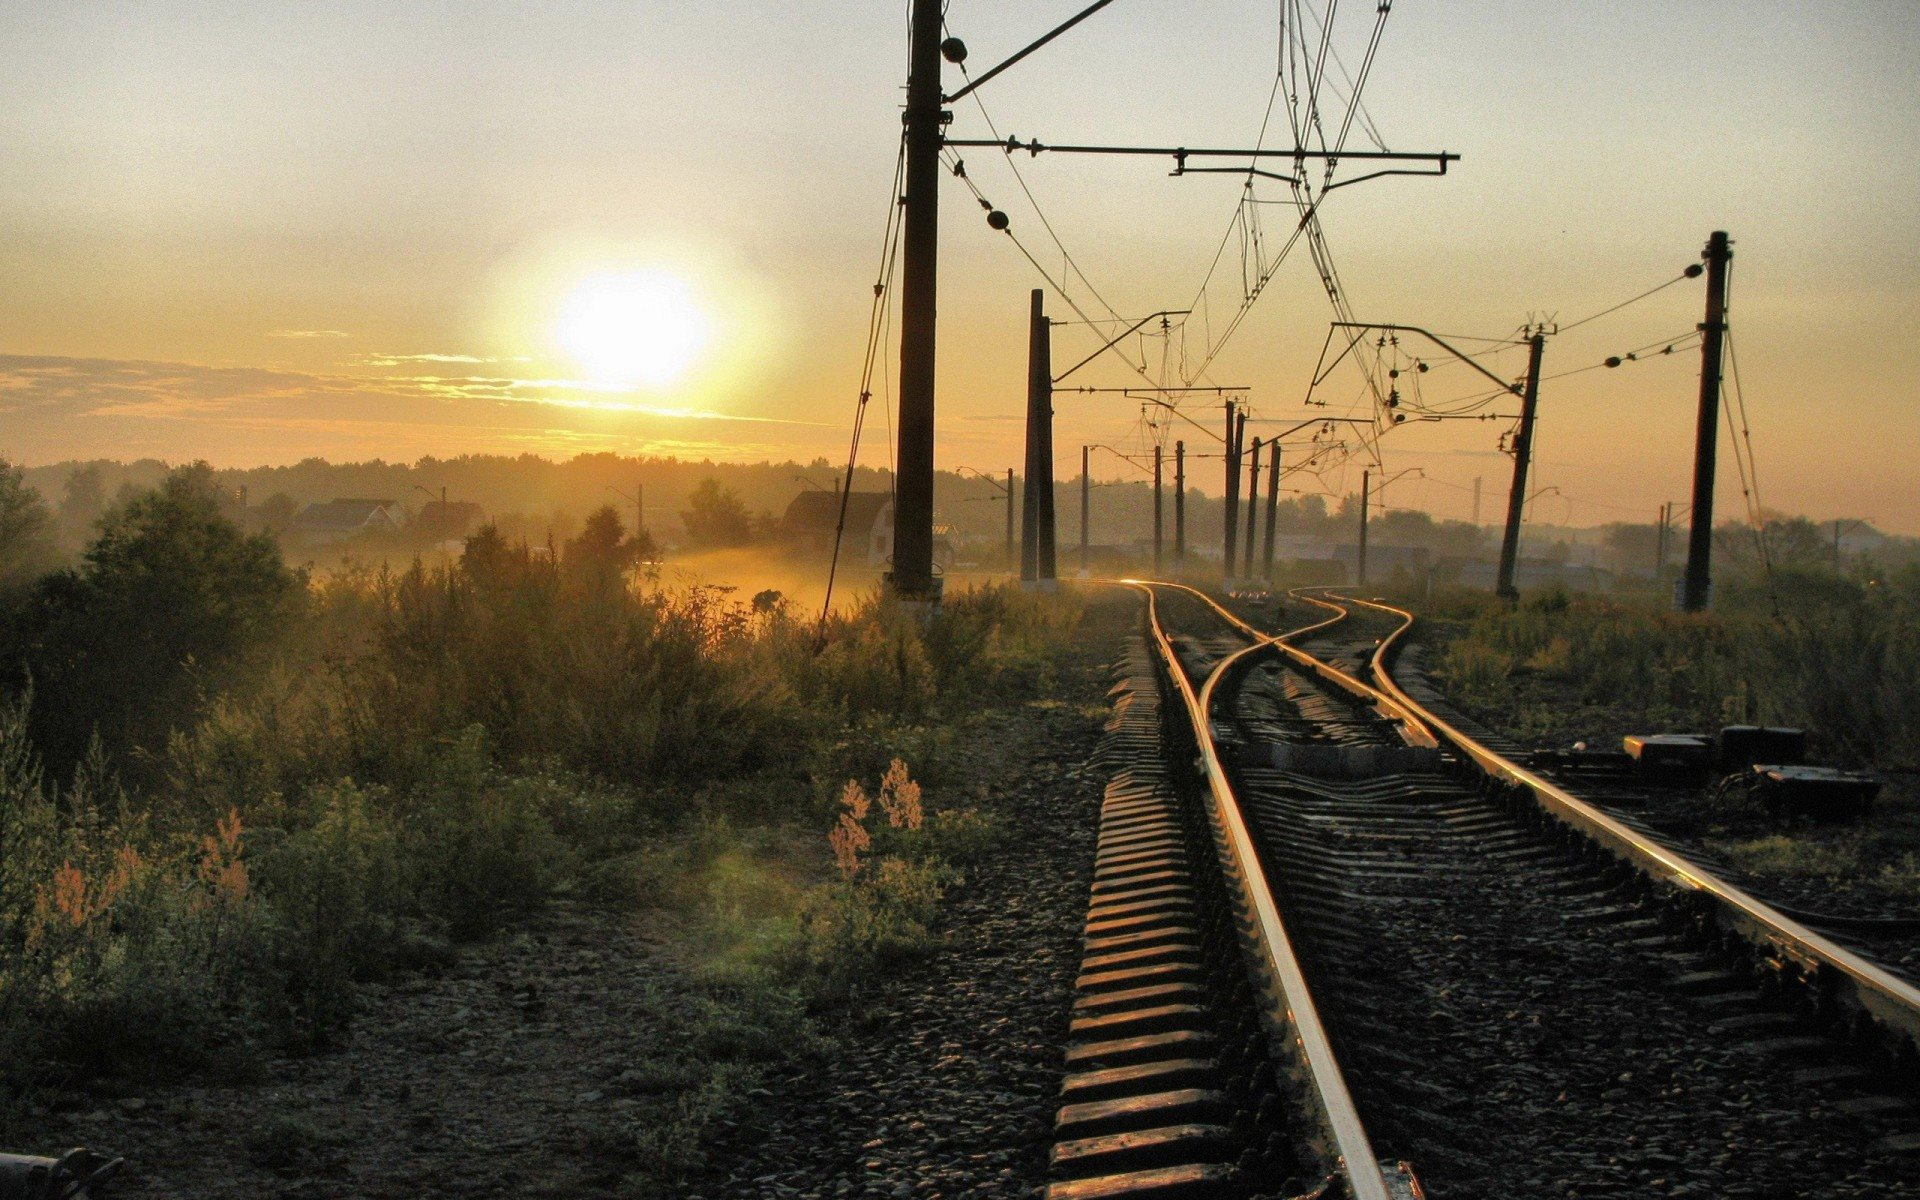 Railway at Bright Sunrise 1834.05 Kb